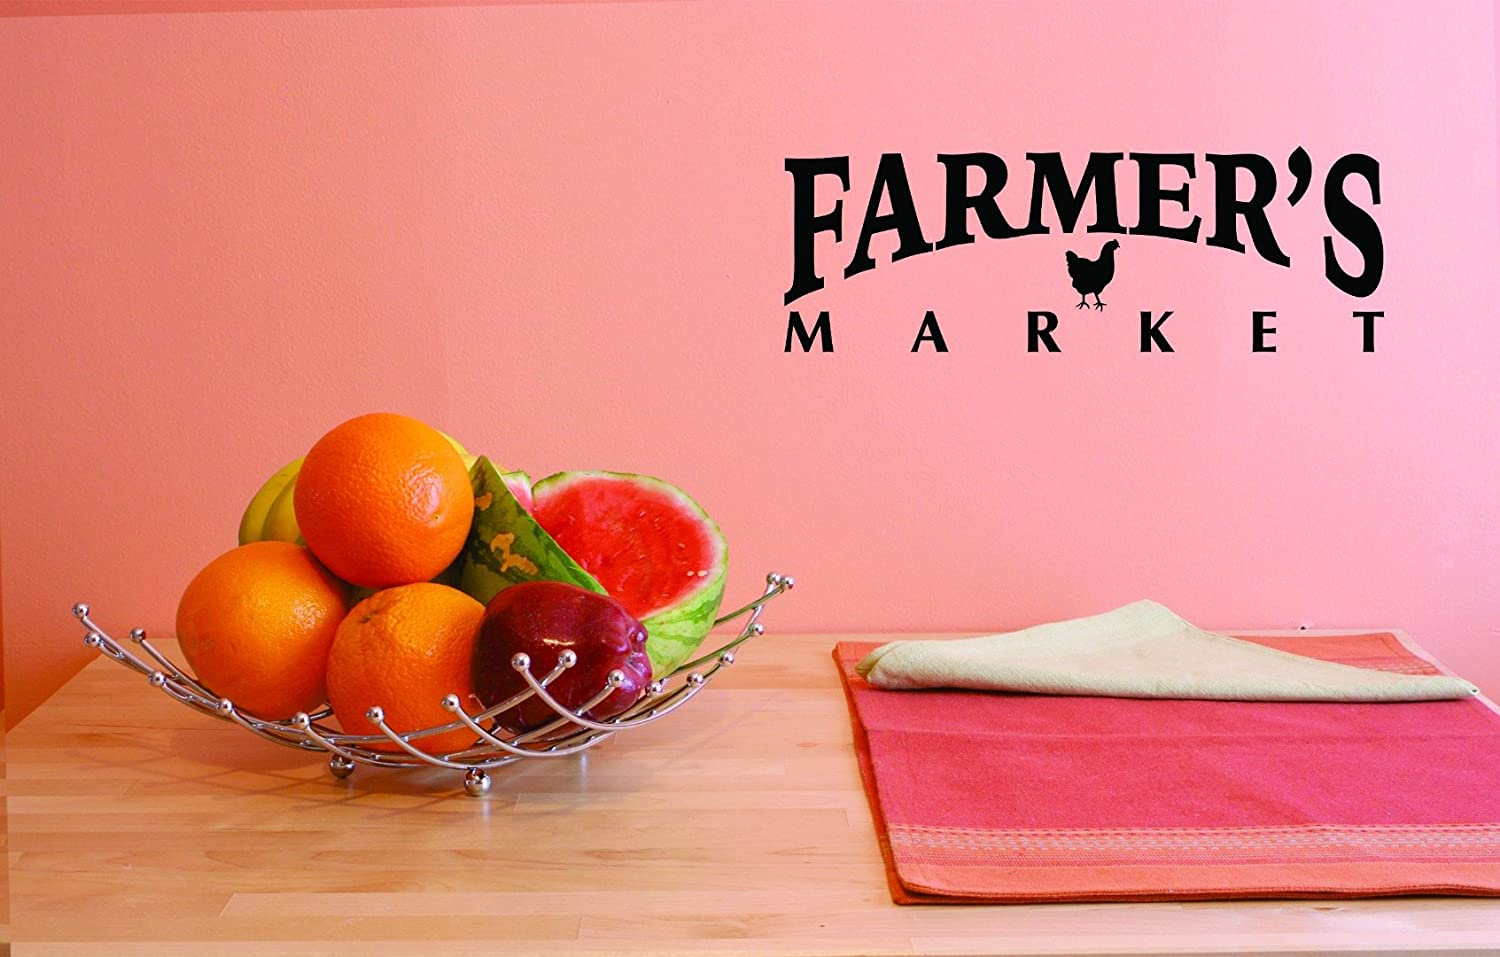 Design with Vinyl JER 1766 1 1 Hot New Decals Farmers Market Wall Art Size 10 inches x 20 inches Color 10 x 20 Black